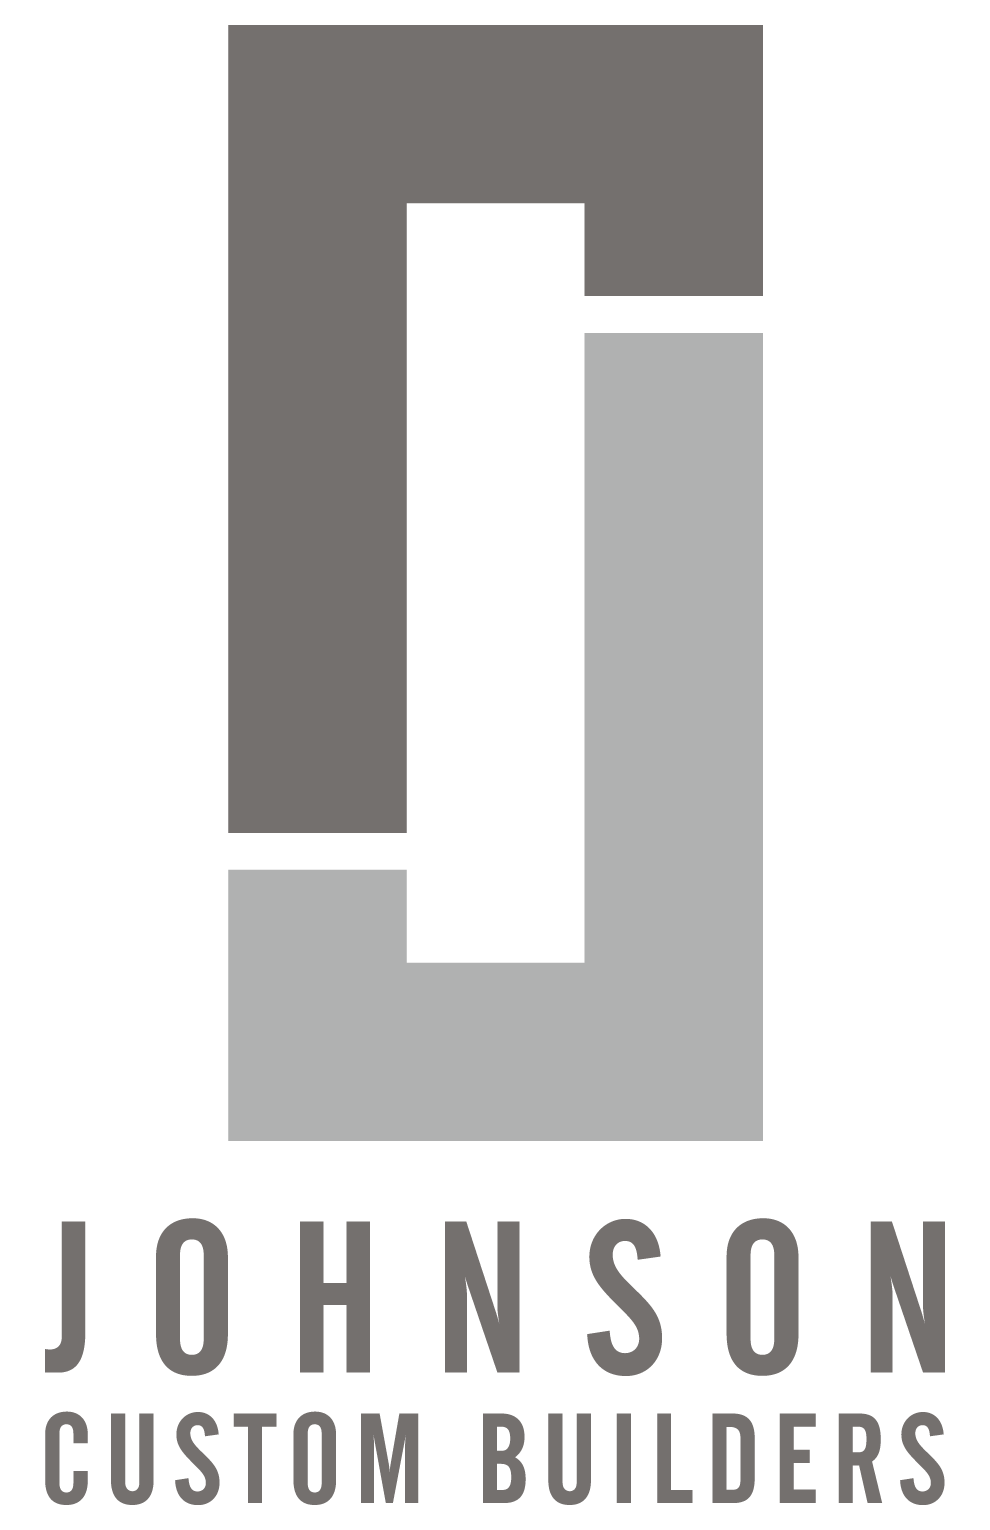 JOHNSON CUSTOM BUILDERS